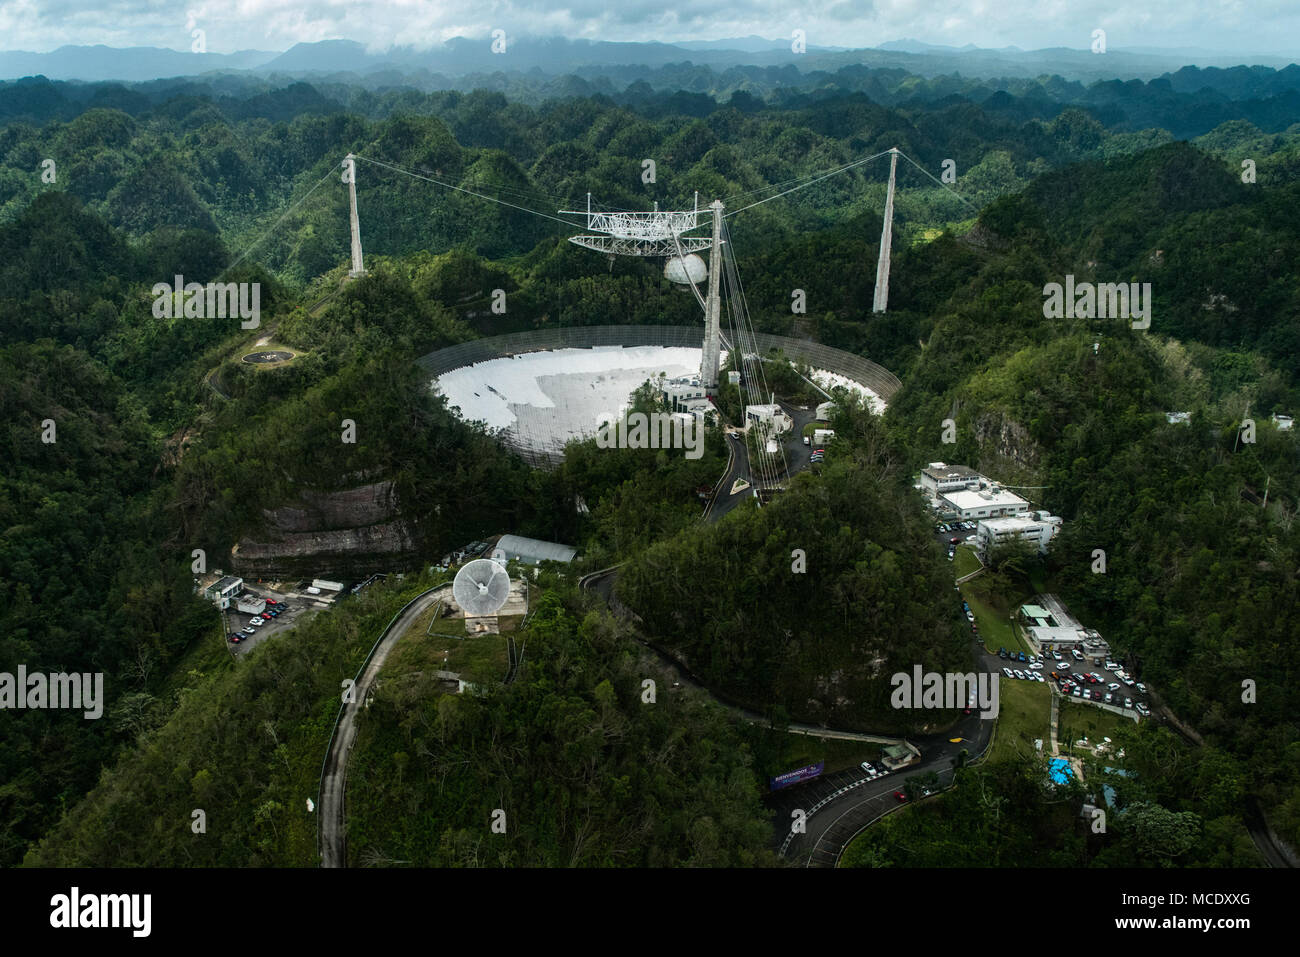 Bayamon, Puerto Rico, Feb. 13, 2018—FEMA Region VII personnel, Region VII Administrator Paul Taylor, and FEMA personnel from the Joint Field Office take an aerial tour of infrastructure damaged by Hurricanes Irma and Maria last September. The Radio Telescope at the Arecibo Observatory is facing months of costly repairs. FEMA/K.C. Wilsey Stock Photo